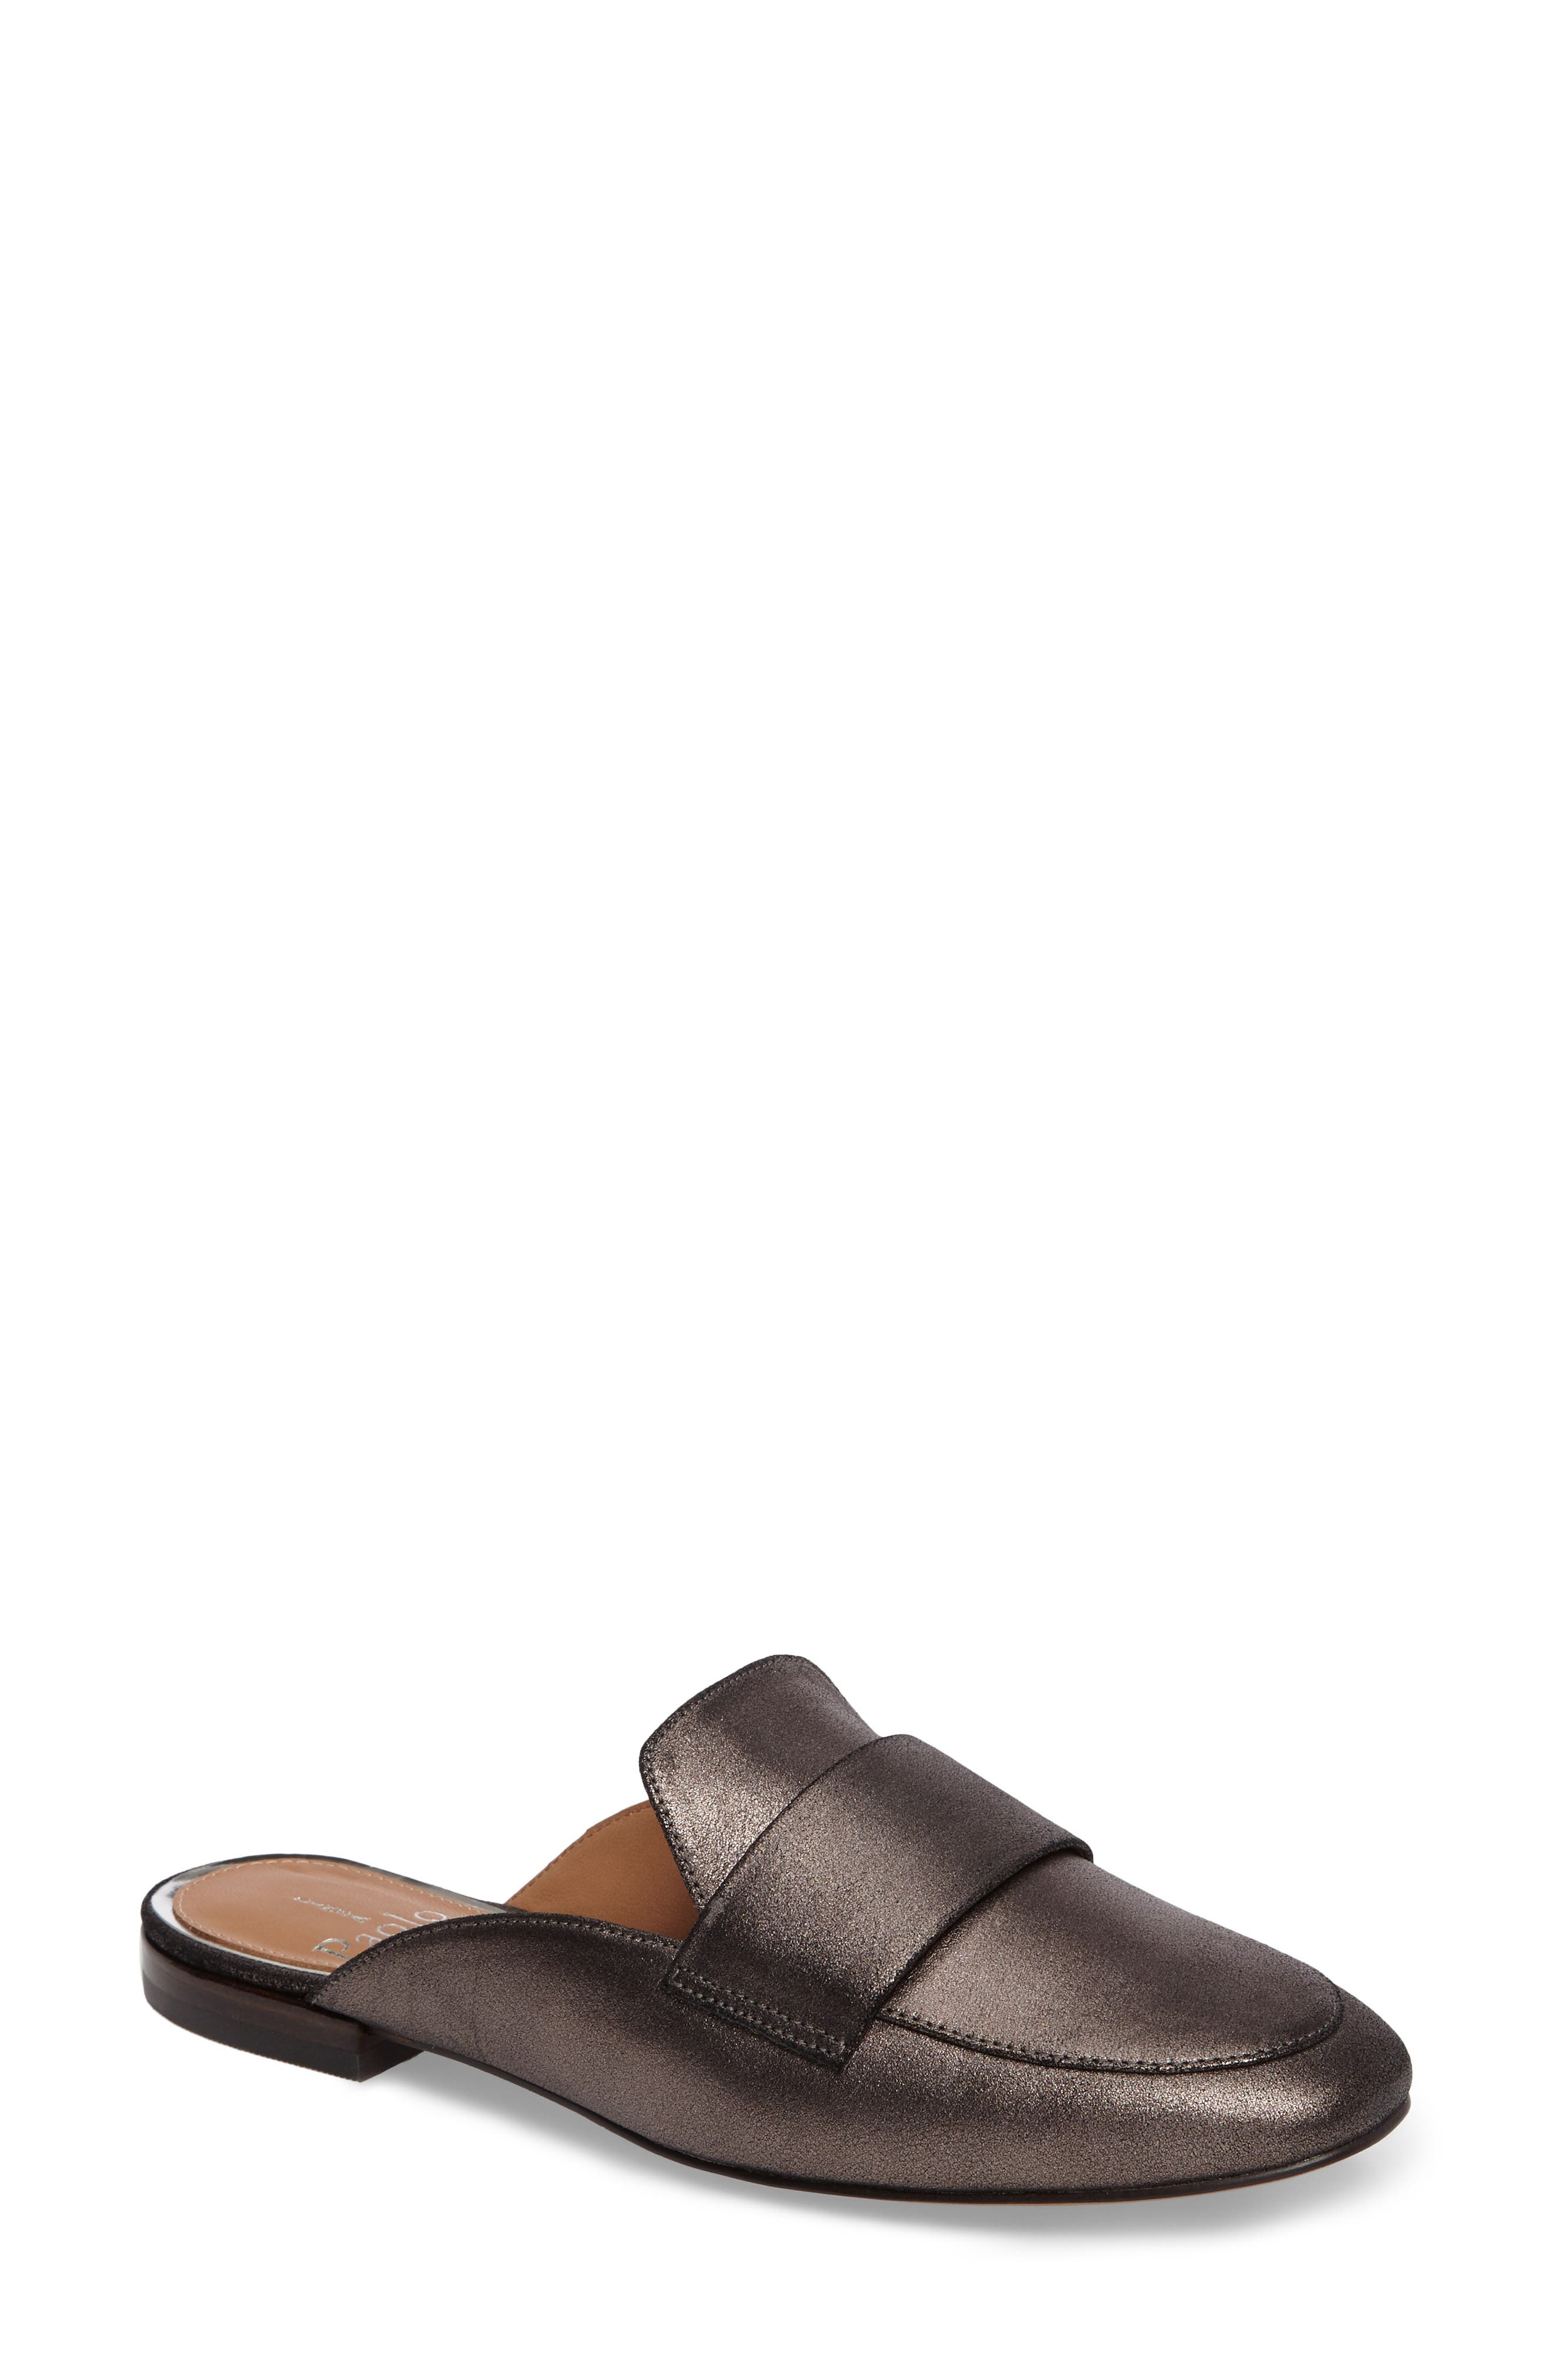 LINEA PAOLO Annie Loafer Mule, Main, color, PEWTER SUEDE